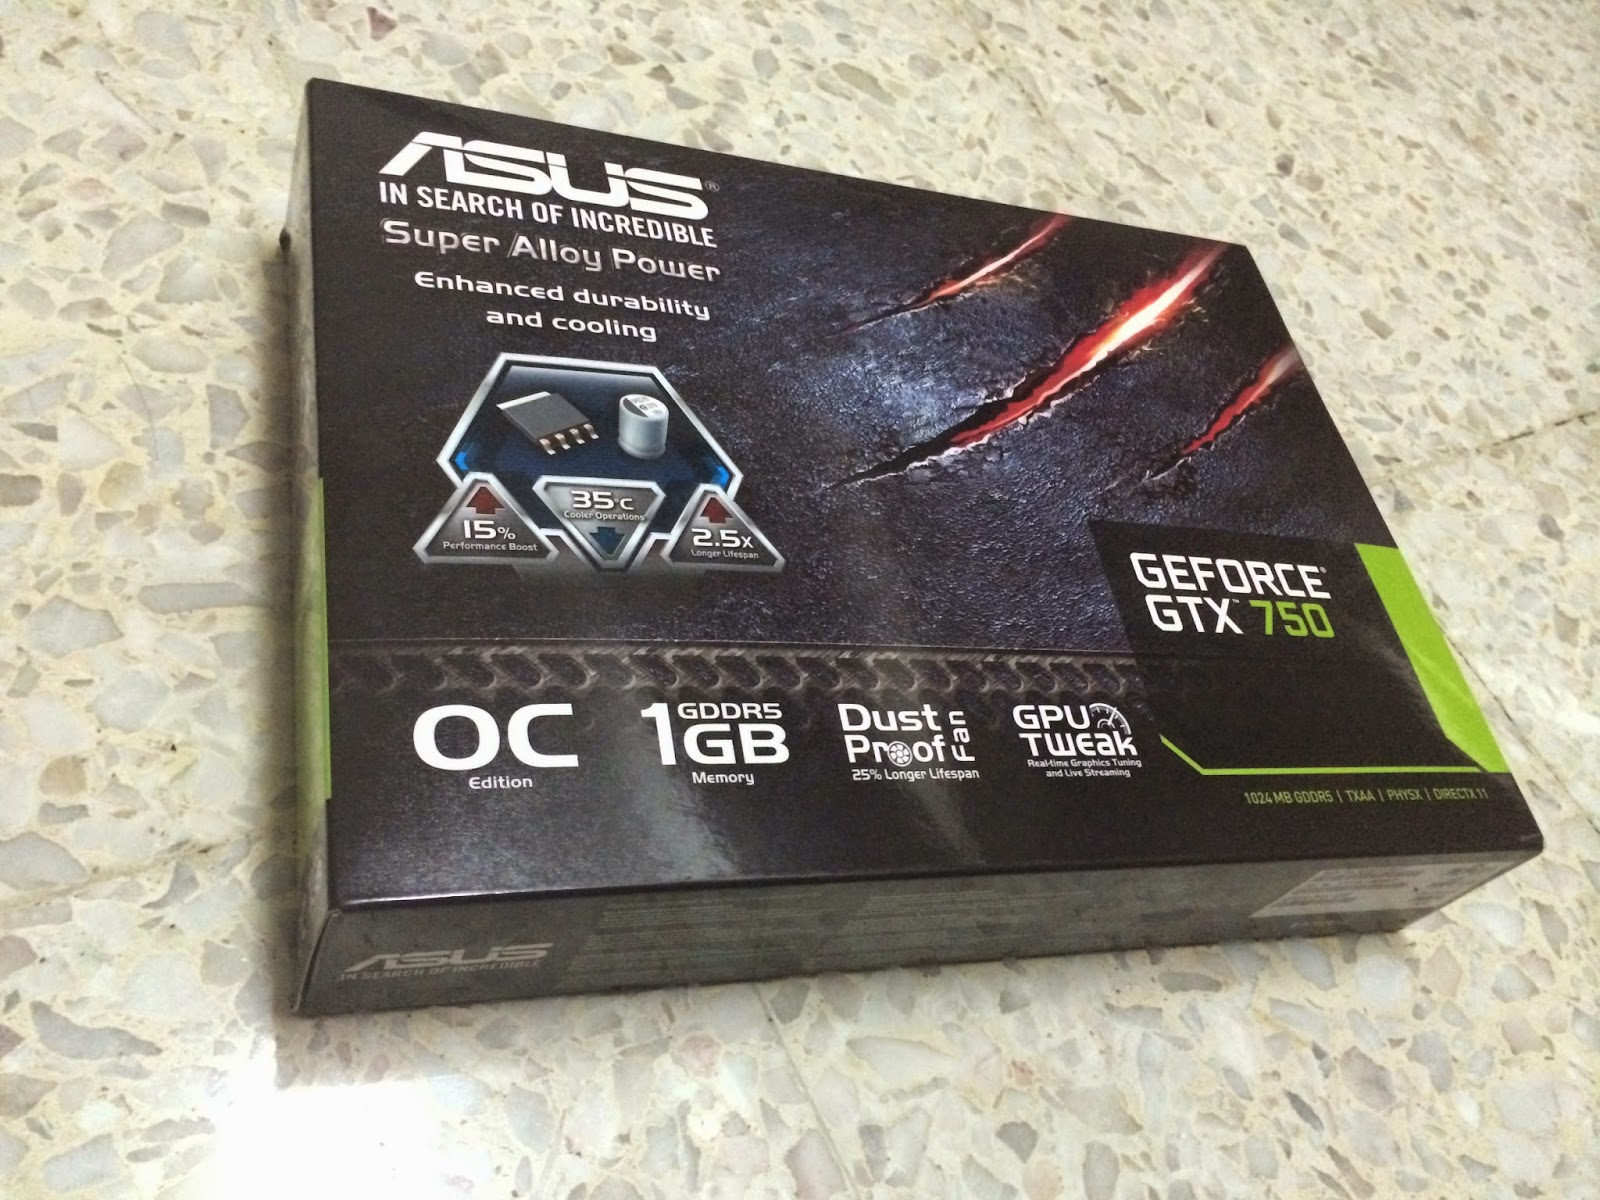 ASUS GTX 750 Performance Review 3